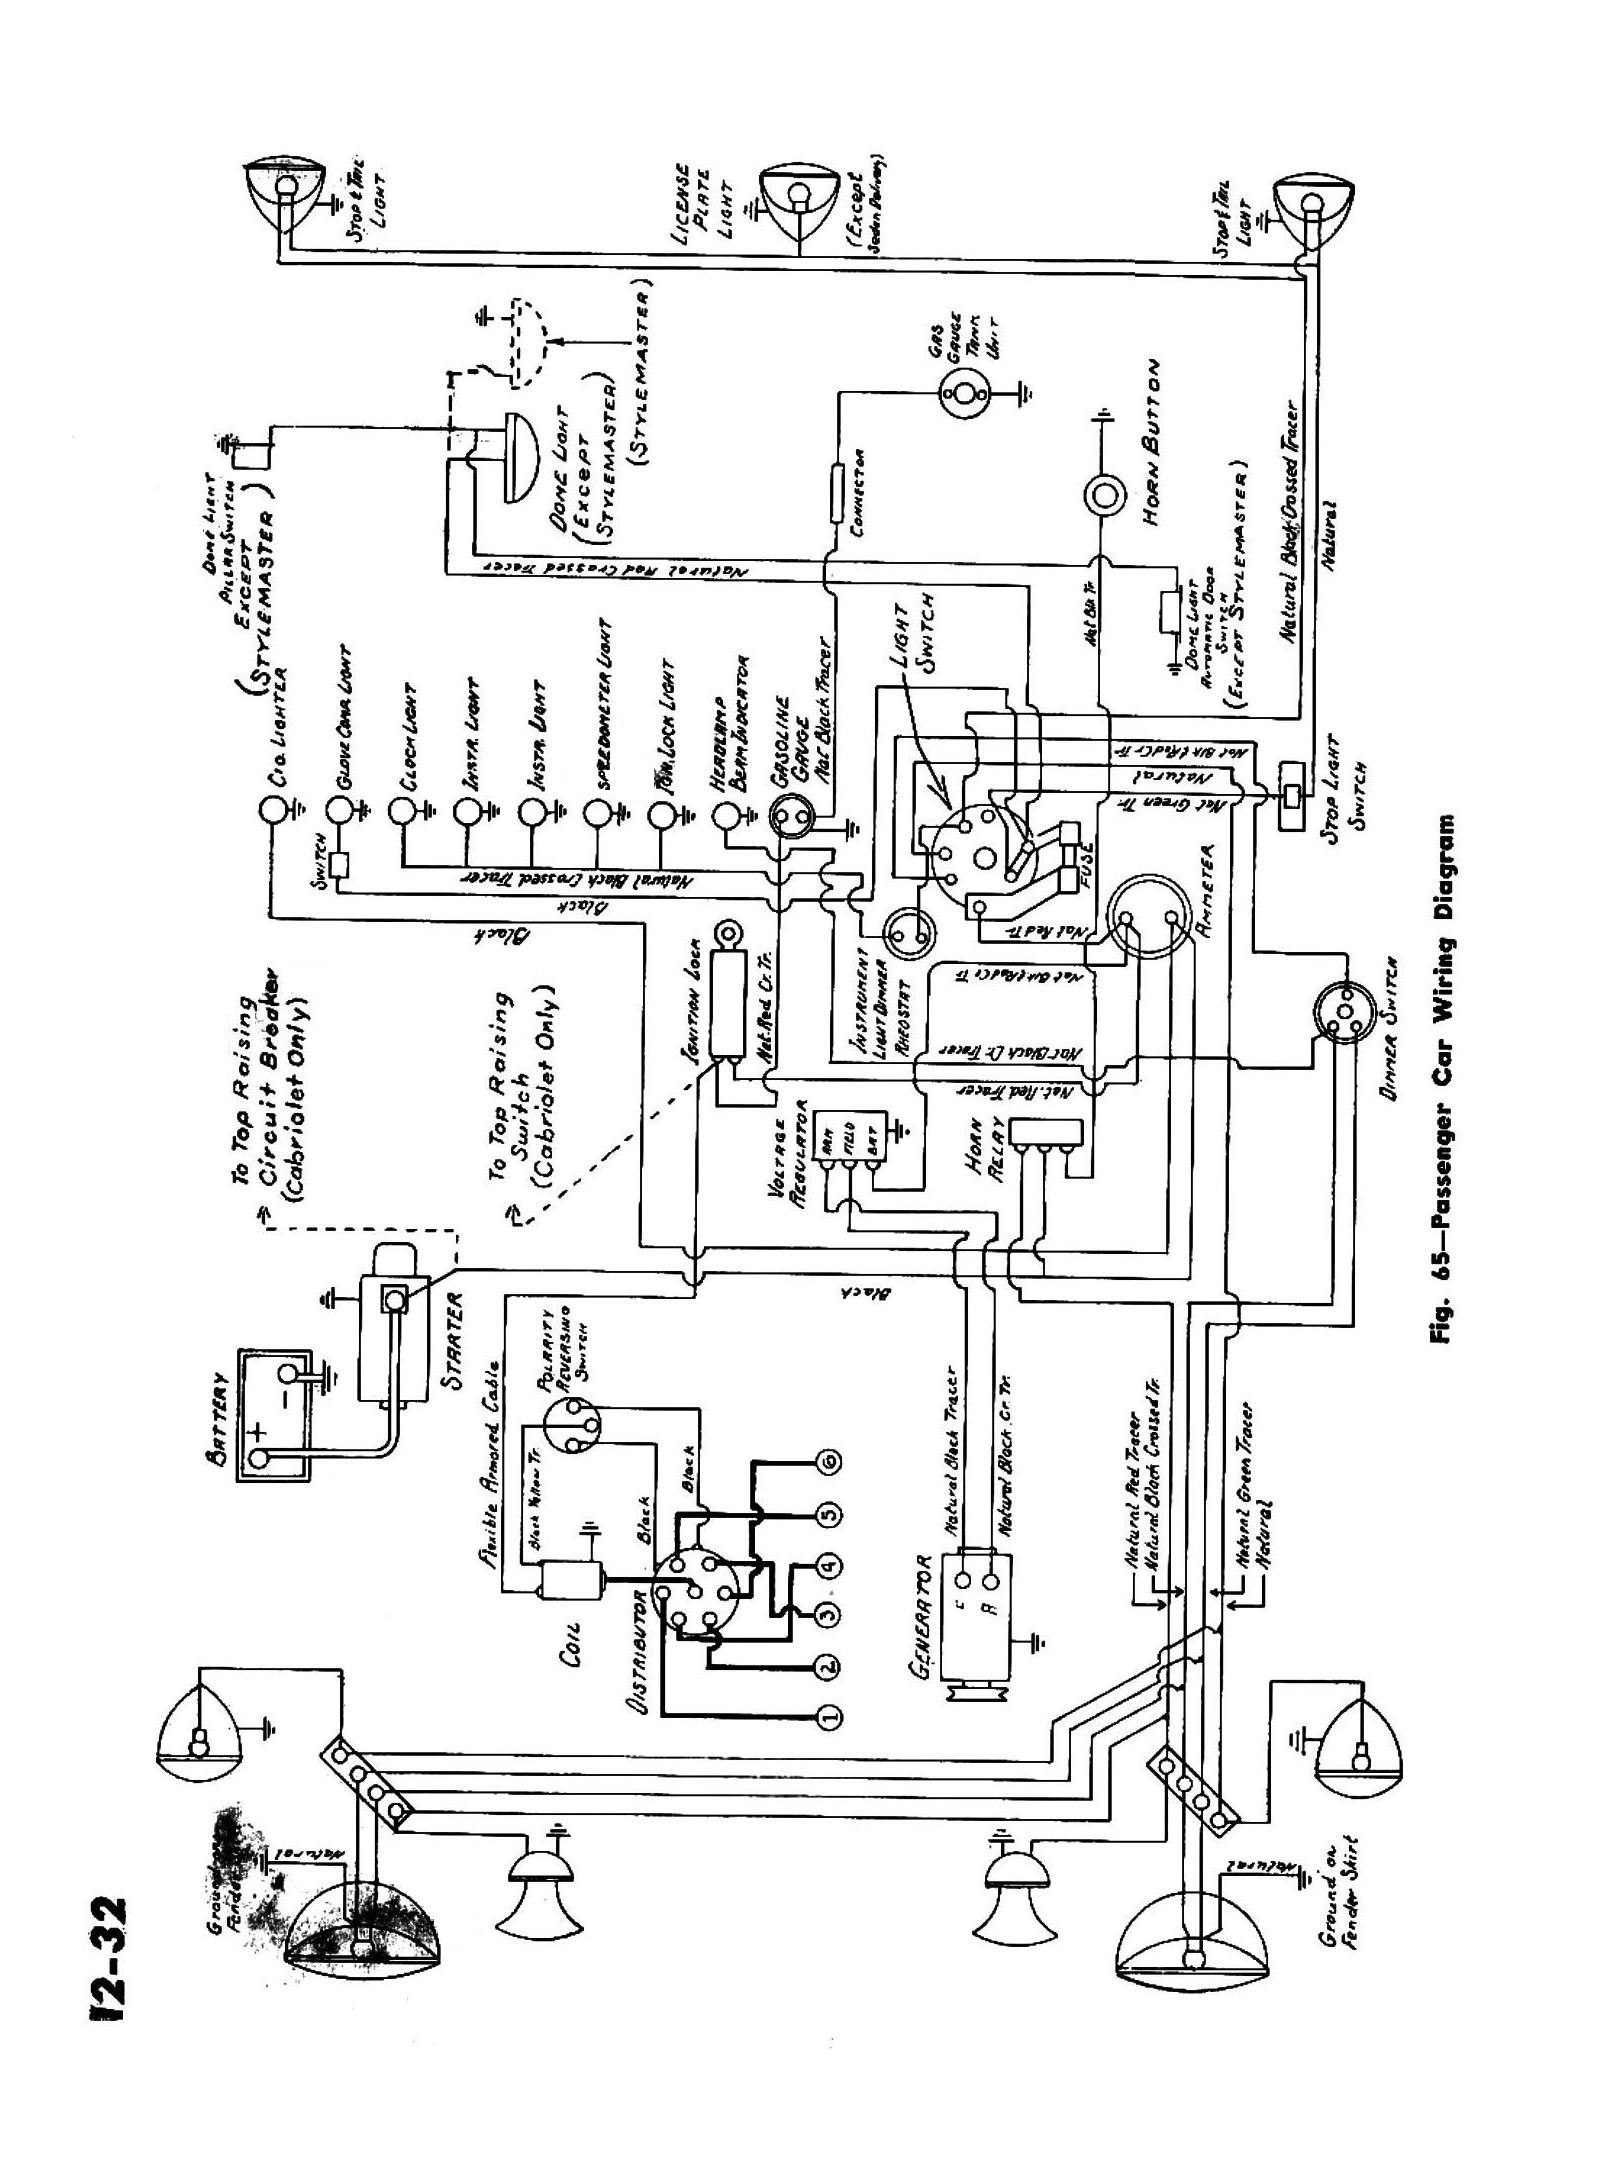 Looking for a wiring schematic for a 1947 48 ONLY of a